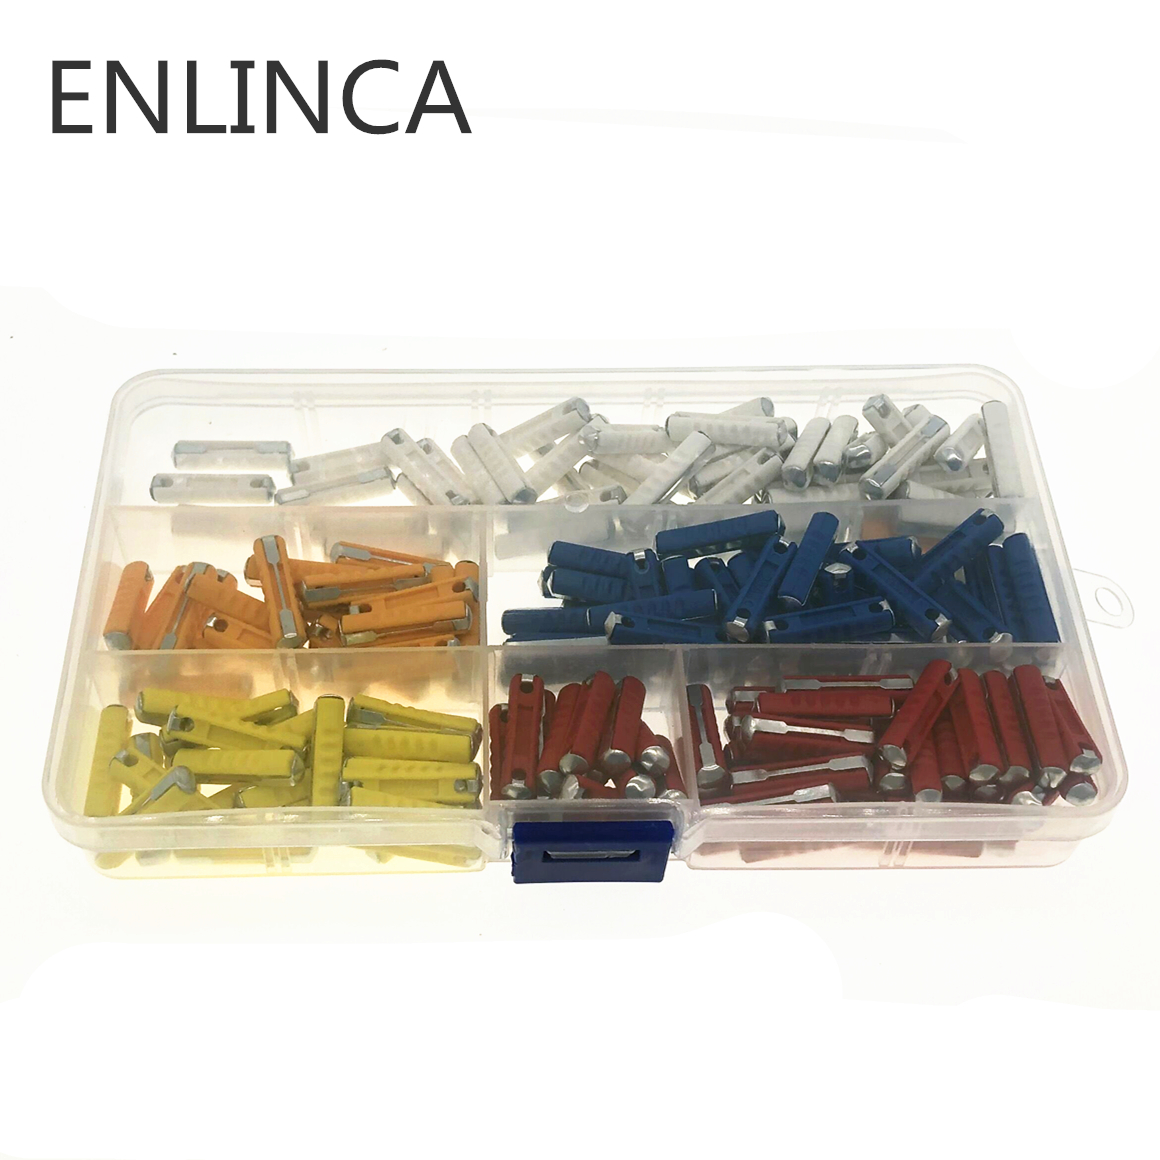 200Pcs/Kit 5A 8A 10A 16A 25A Classic Car Auto Fuses Kit Ceramic Continental Car Fuse Bullet Automotive European Fuse